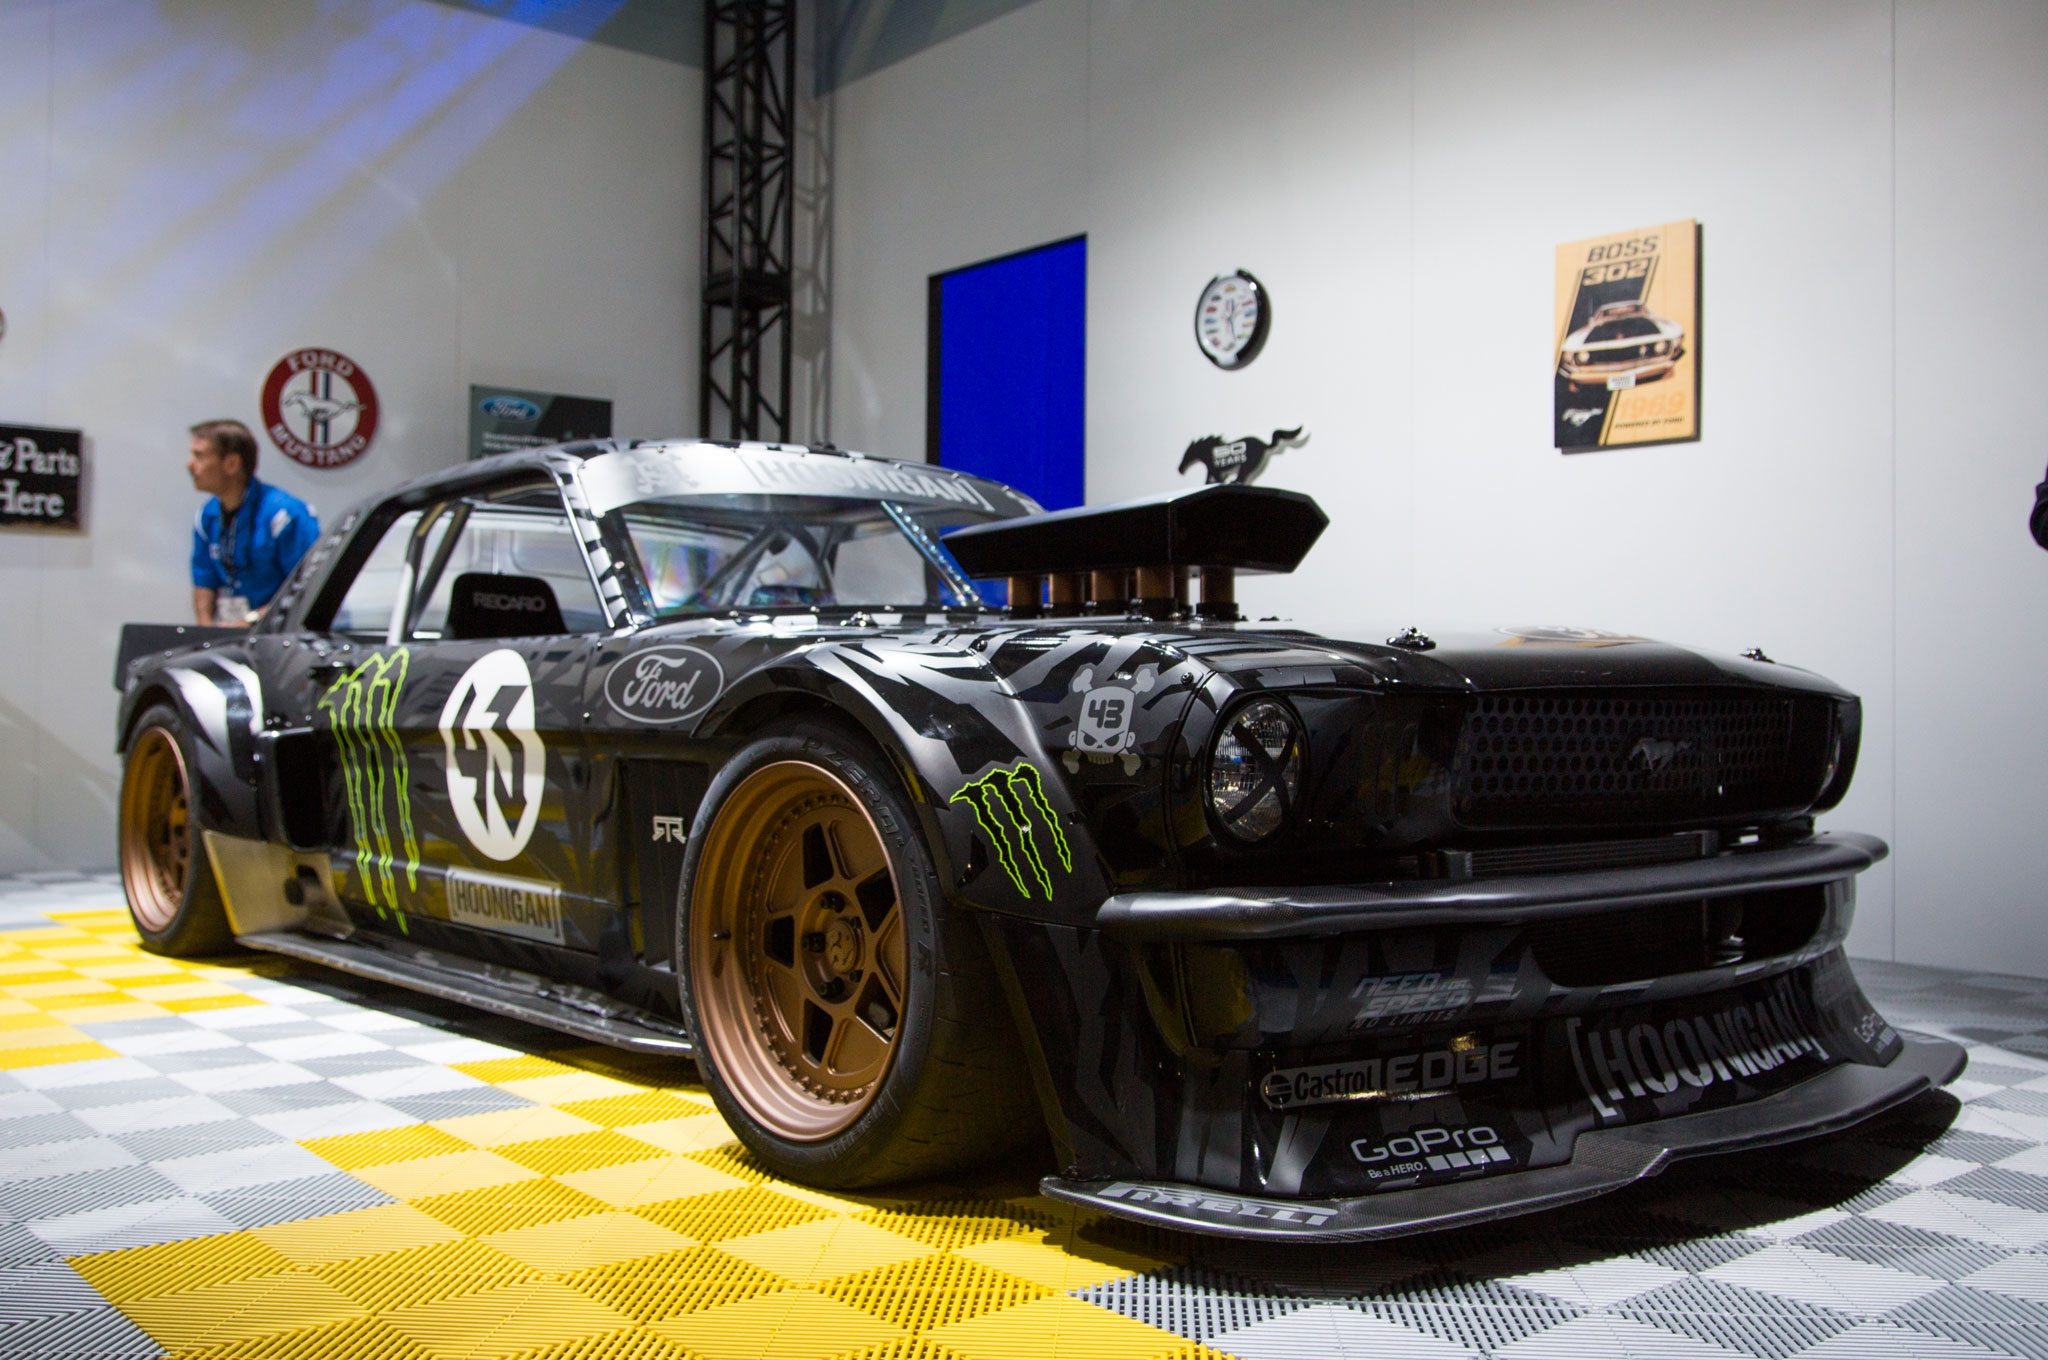 Ken Block Mustang Wallpaper Wallpapersafari